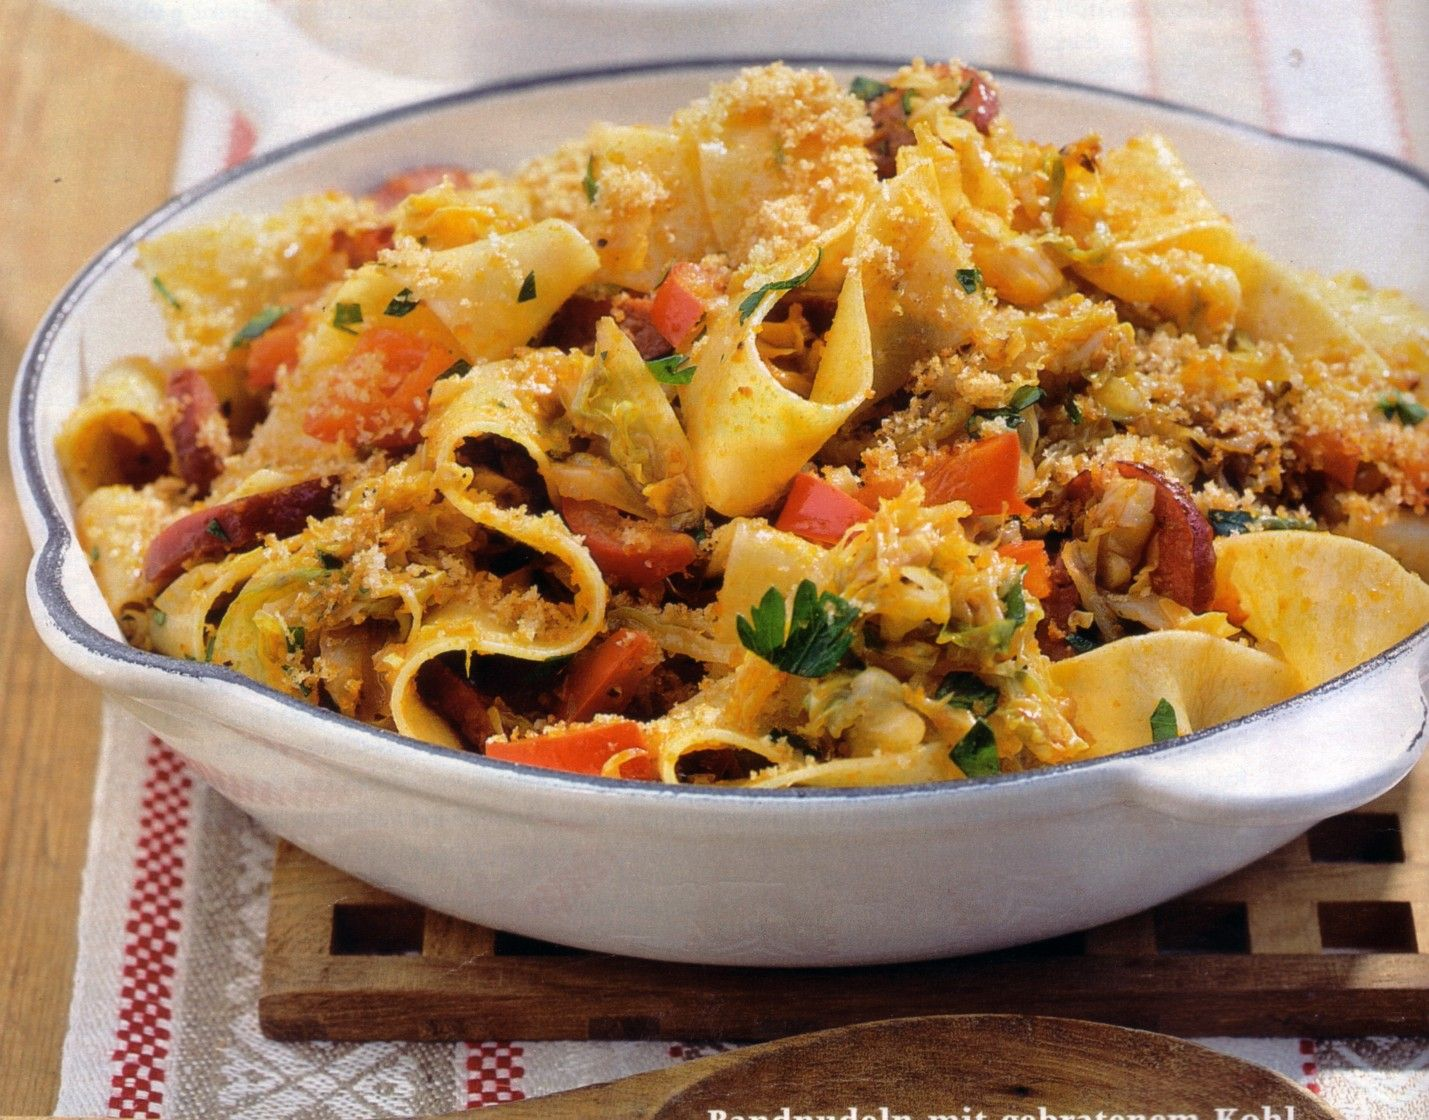 Pasta cabbage german food german recipes recipies pinterest what about the german dish ribbon pasta fried cabbage for your next dinner the recipe uses ribbon pasta but bow tie pasta would be great too check it out forumfinder Choice Image